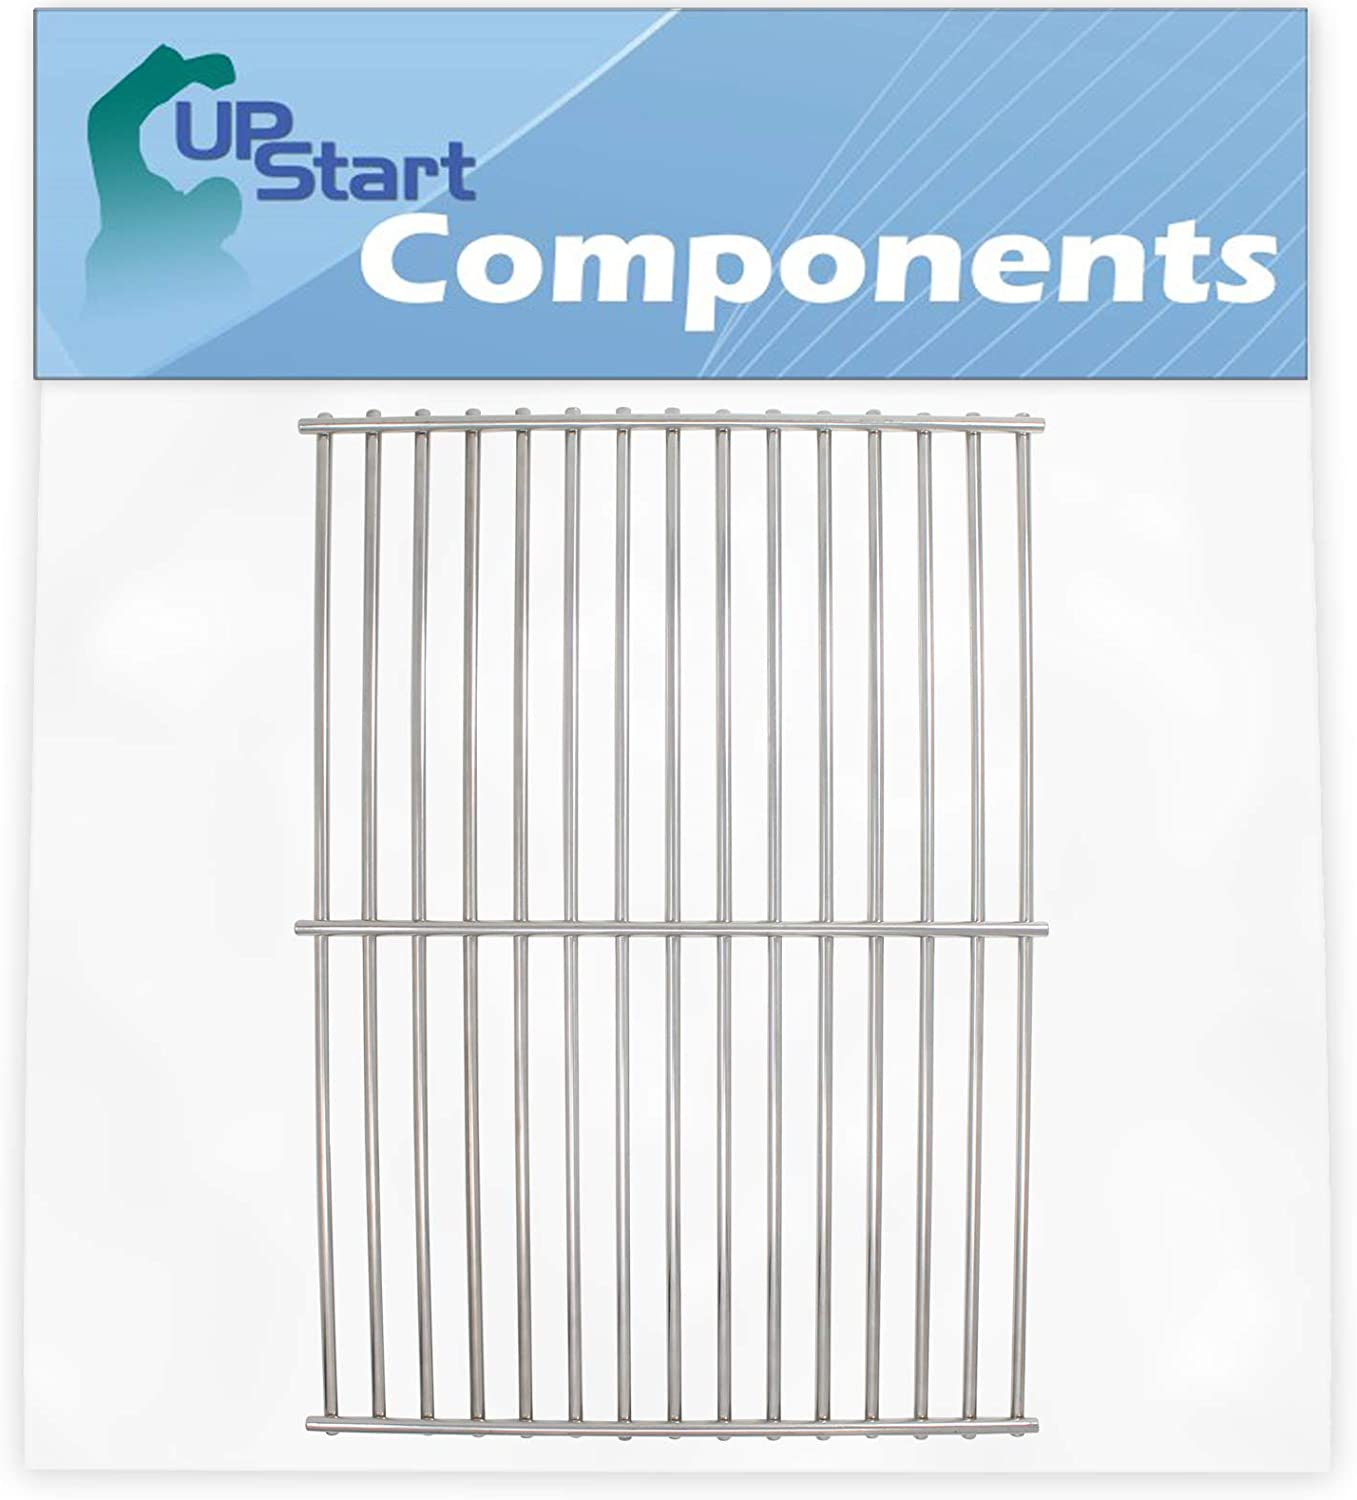 UpStart Components BBQ Grill Gifts Cooking Discount mail order Parts Grates fo Replacement